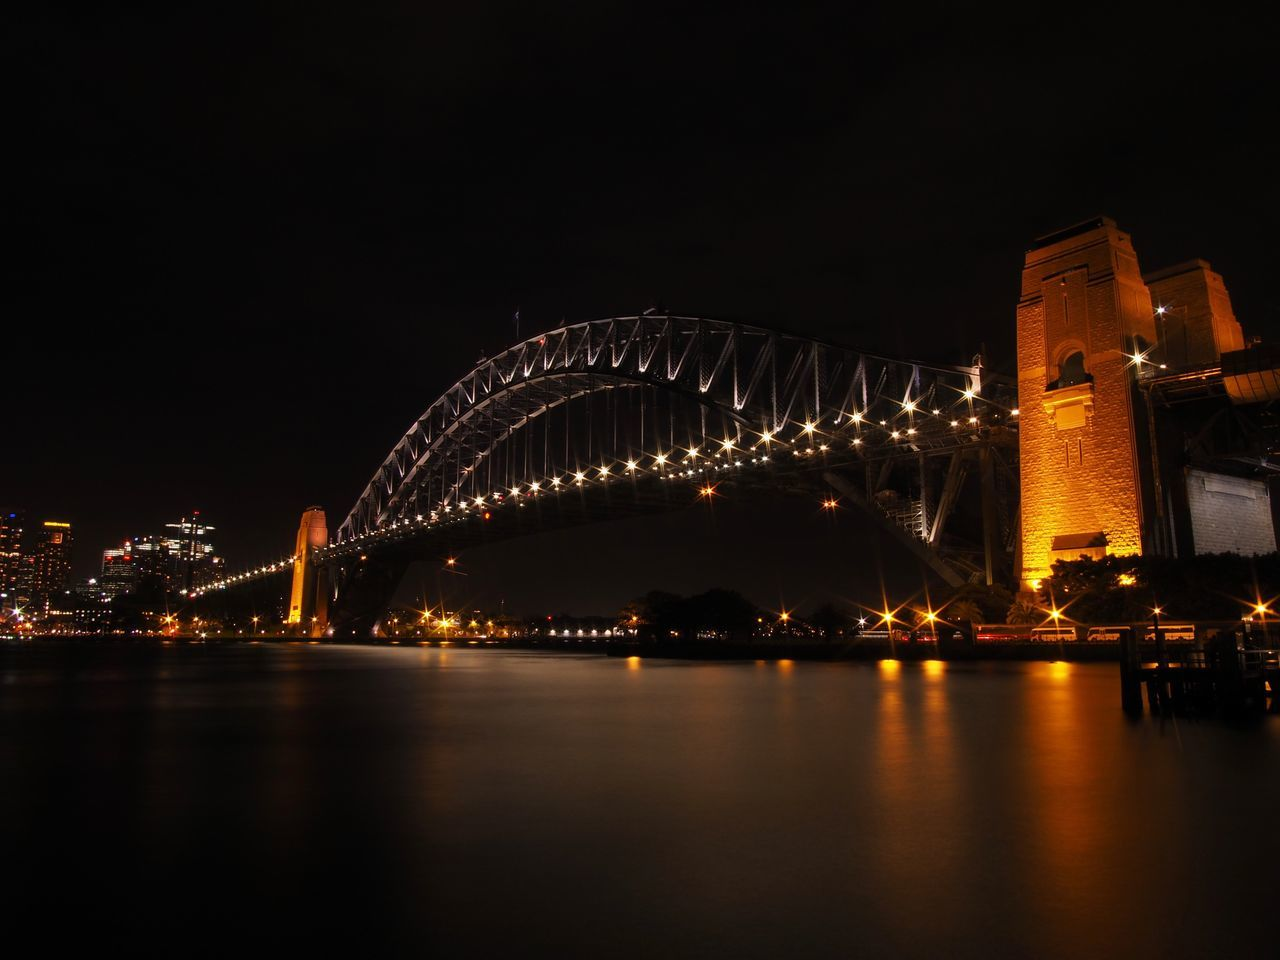 night, architecture, city, illuminated, bridge - man made structure, built structure, river, building exterior, water, cityscape, sky, outdoors, no people, midnight